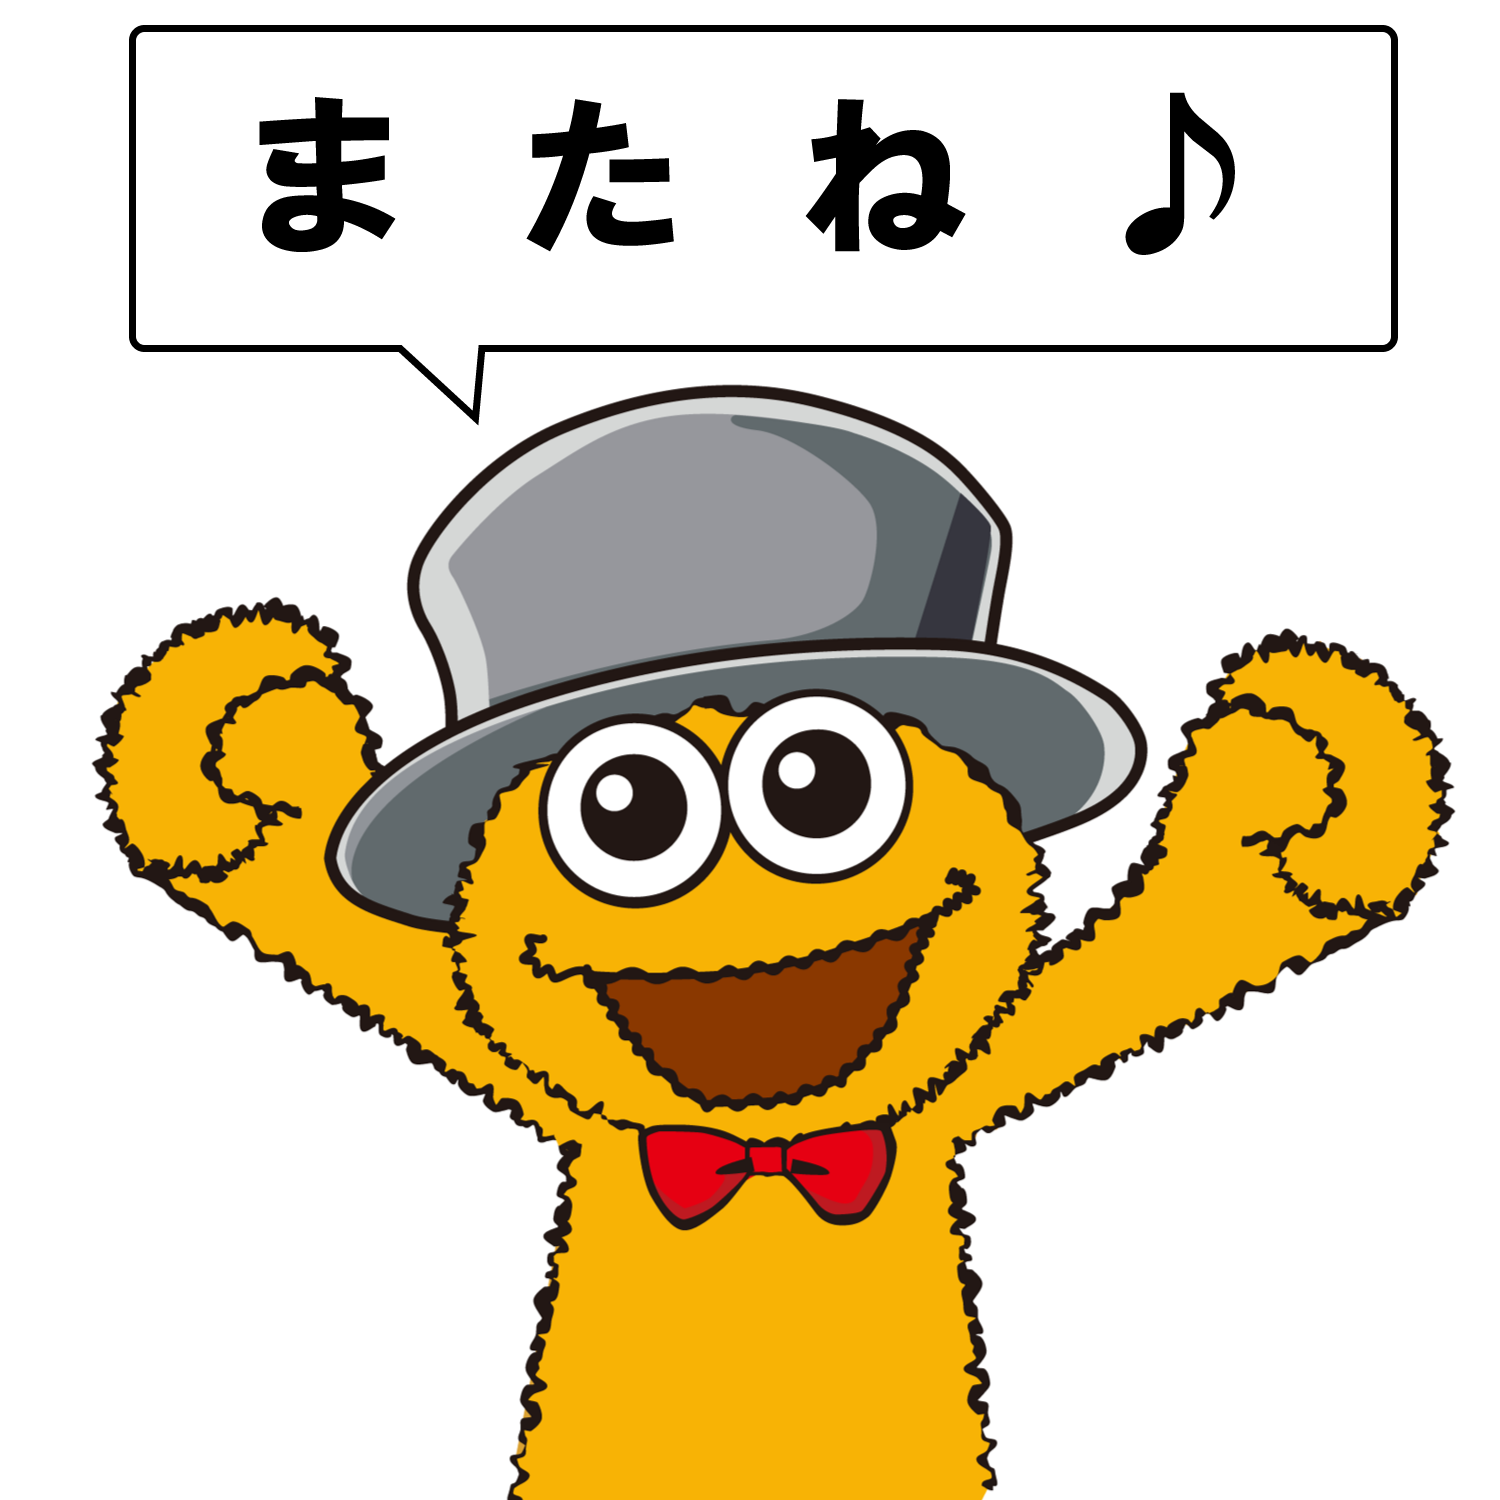 https://stat.ameba.jp/user_images/20170630/17/r-holiday/64/2a/p/o1500150013972068108.png